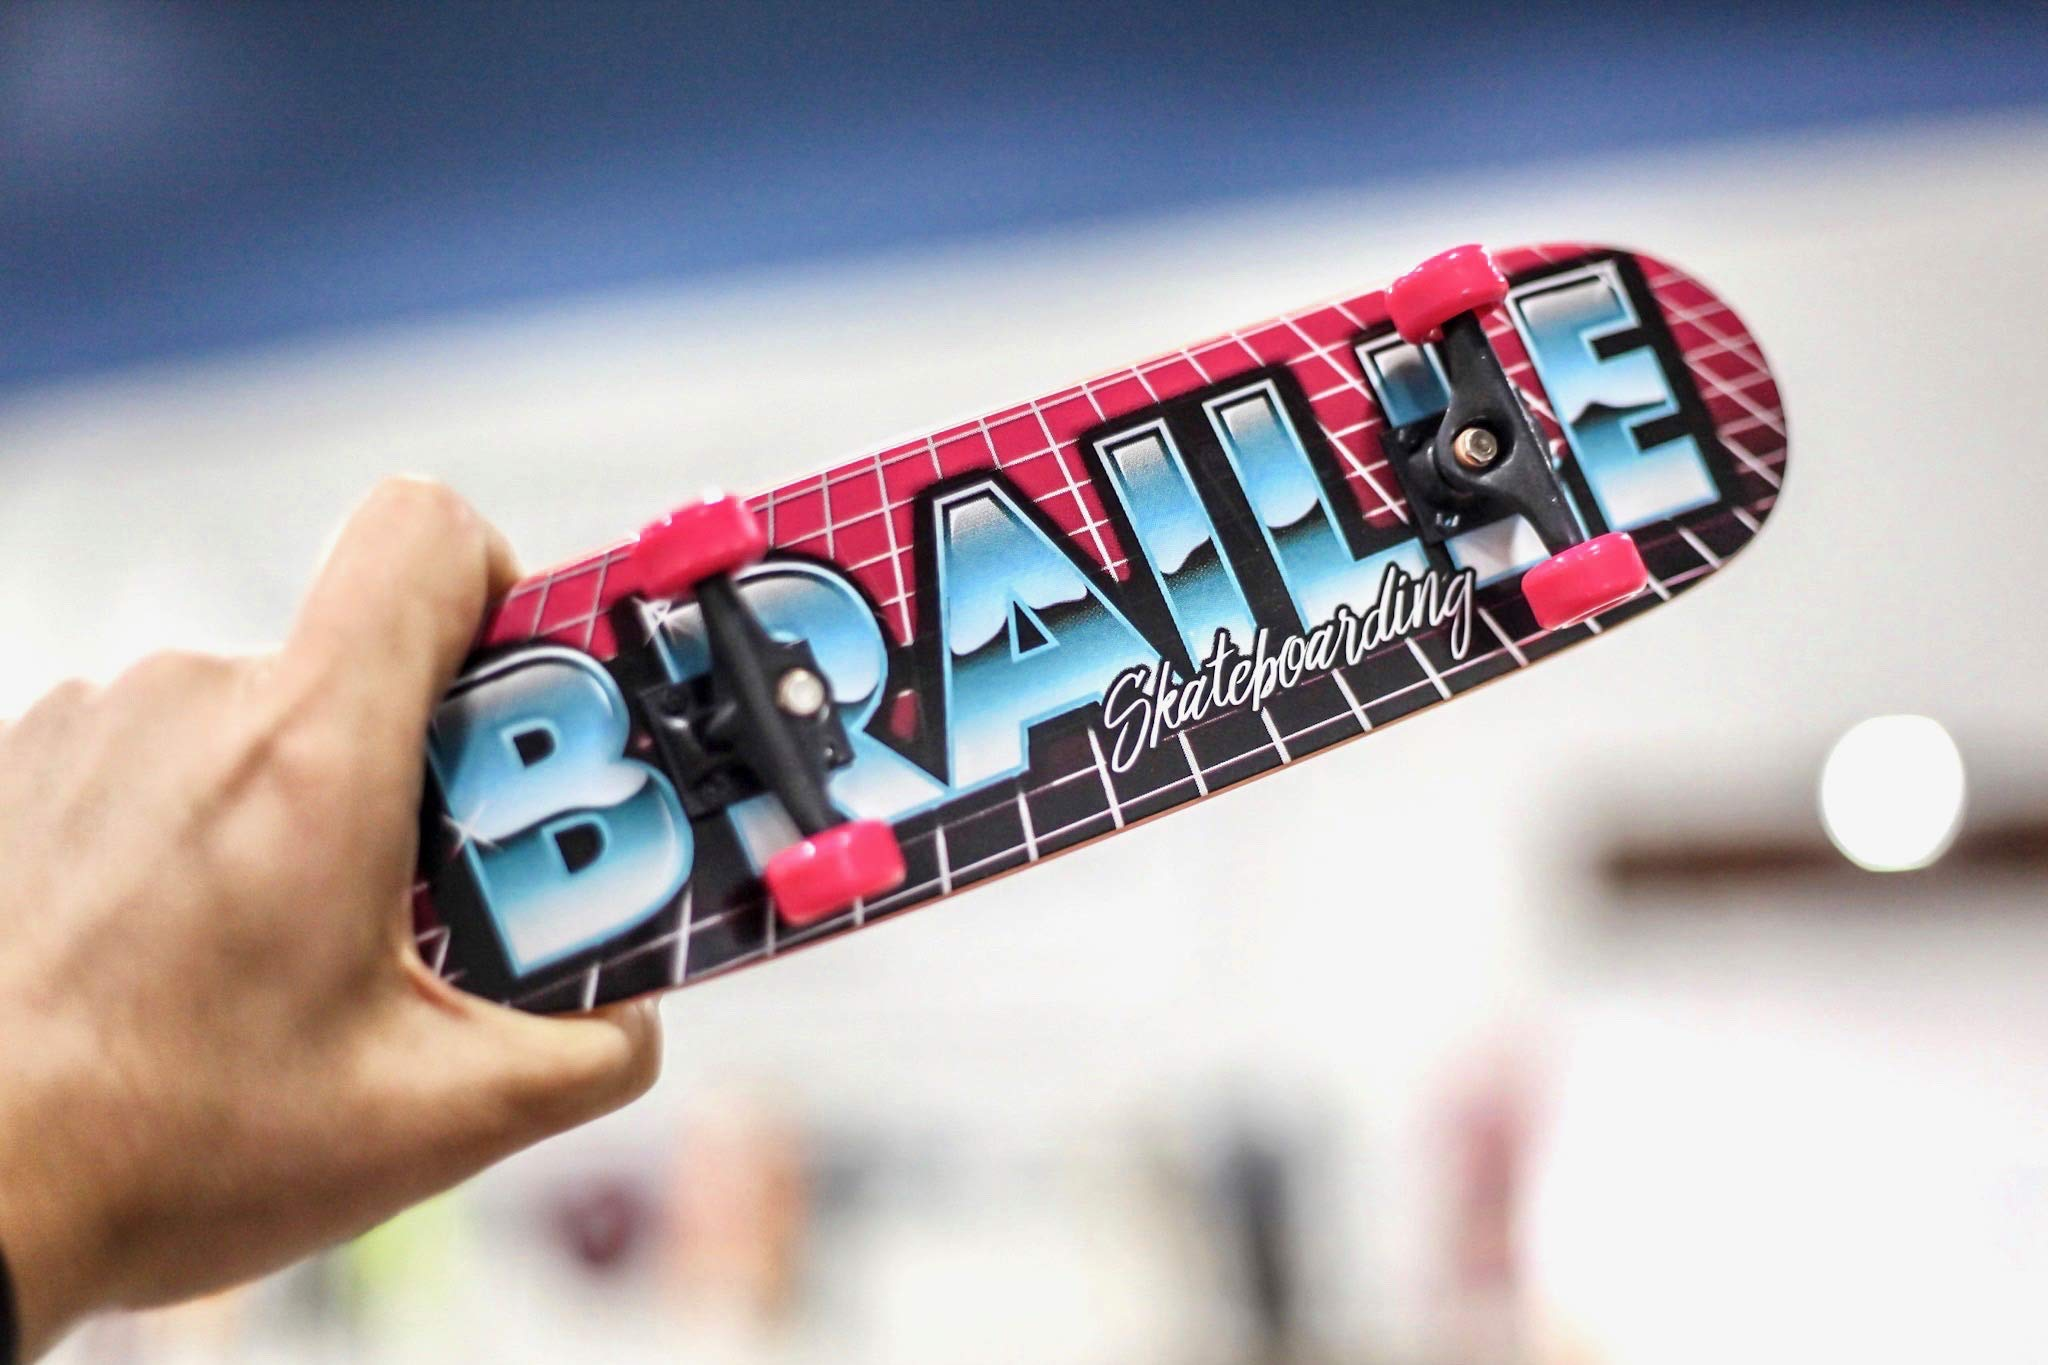 Braille Skateboarding Aaron Kyro 80's 11inch Professional Hand Board. Toy Skateboard Comes with Wheels, Trucks, Hardware and Tools. Real Griptape. by Braille Skateboarding (Image #1)